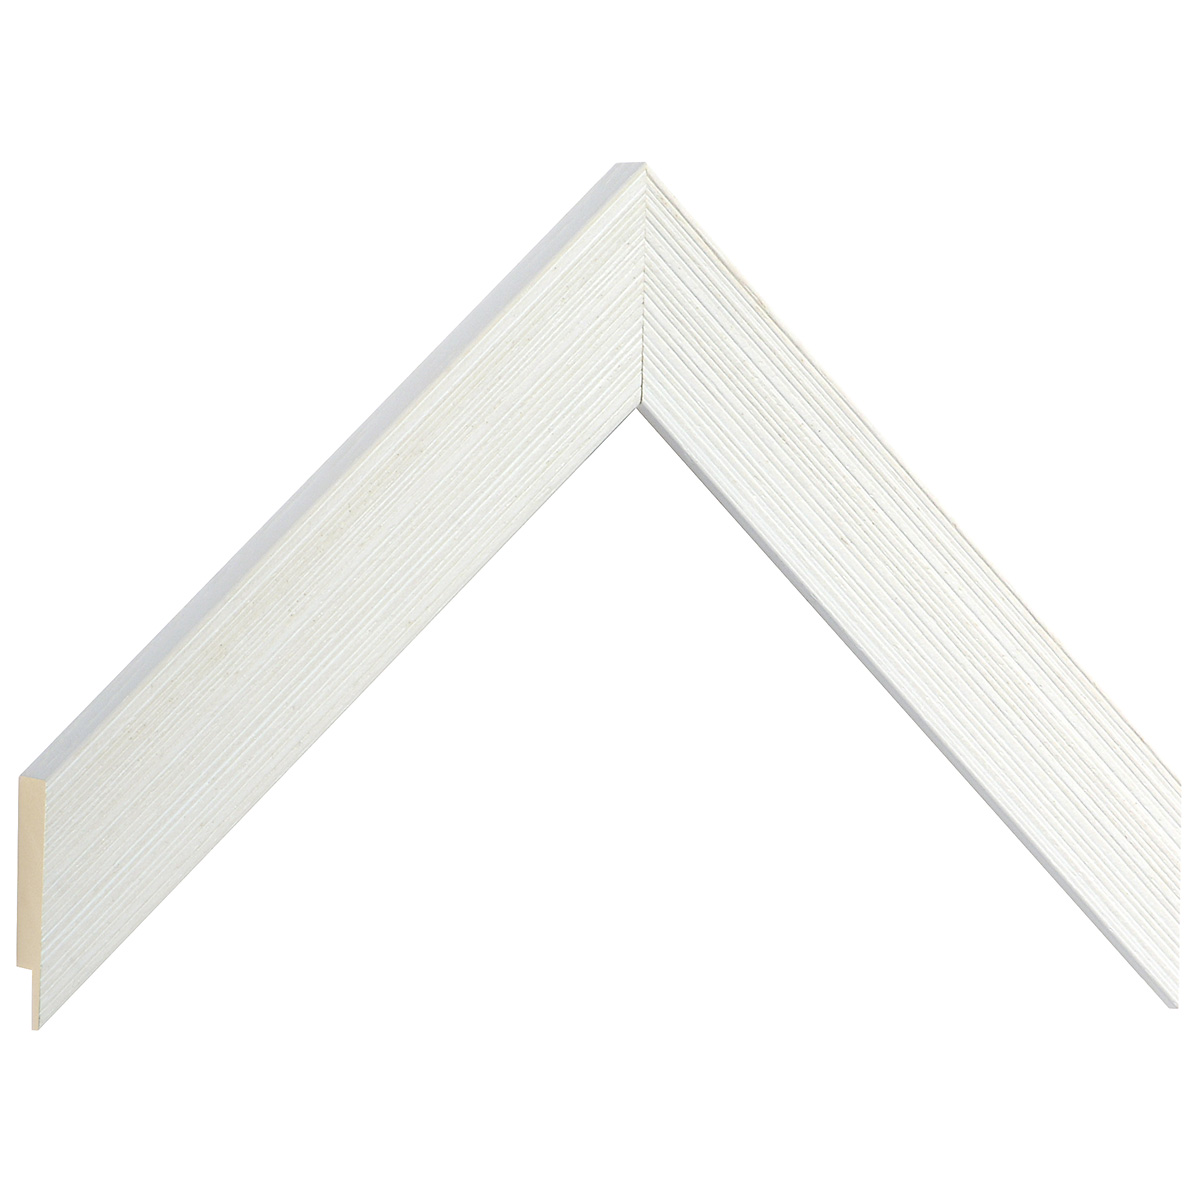 Moulding ayous, width 30mm height 14 - streaked cream finish